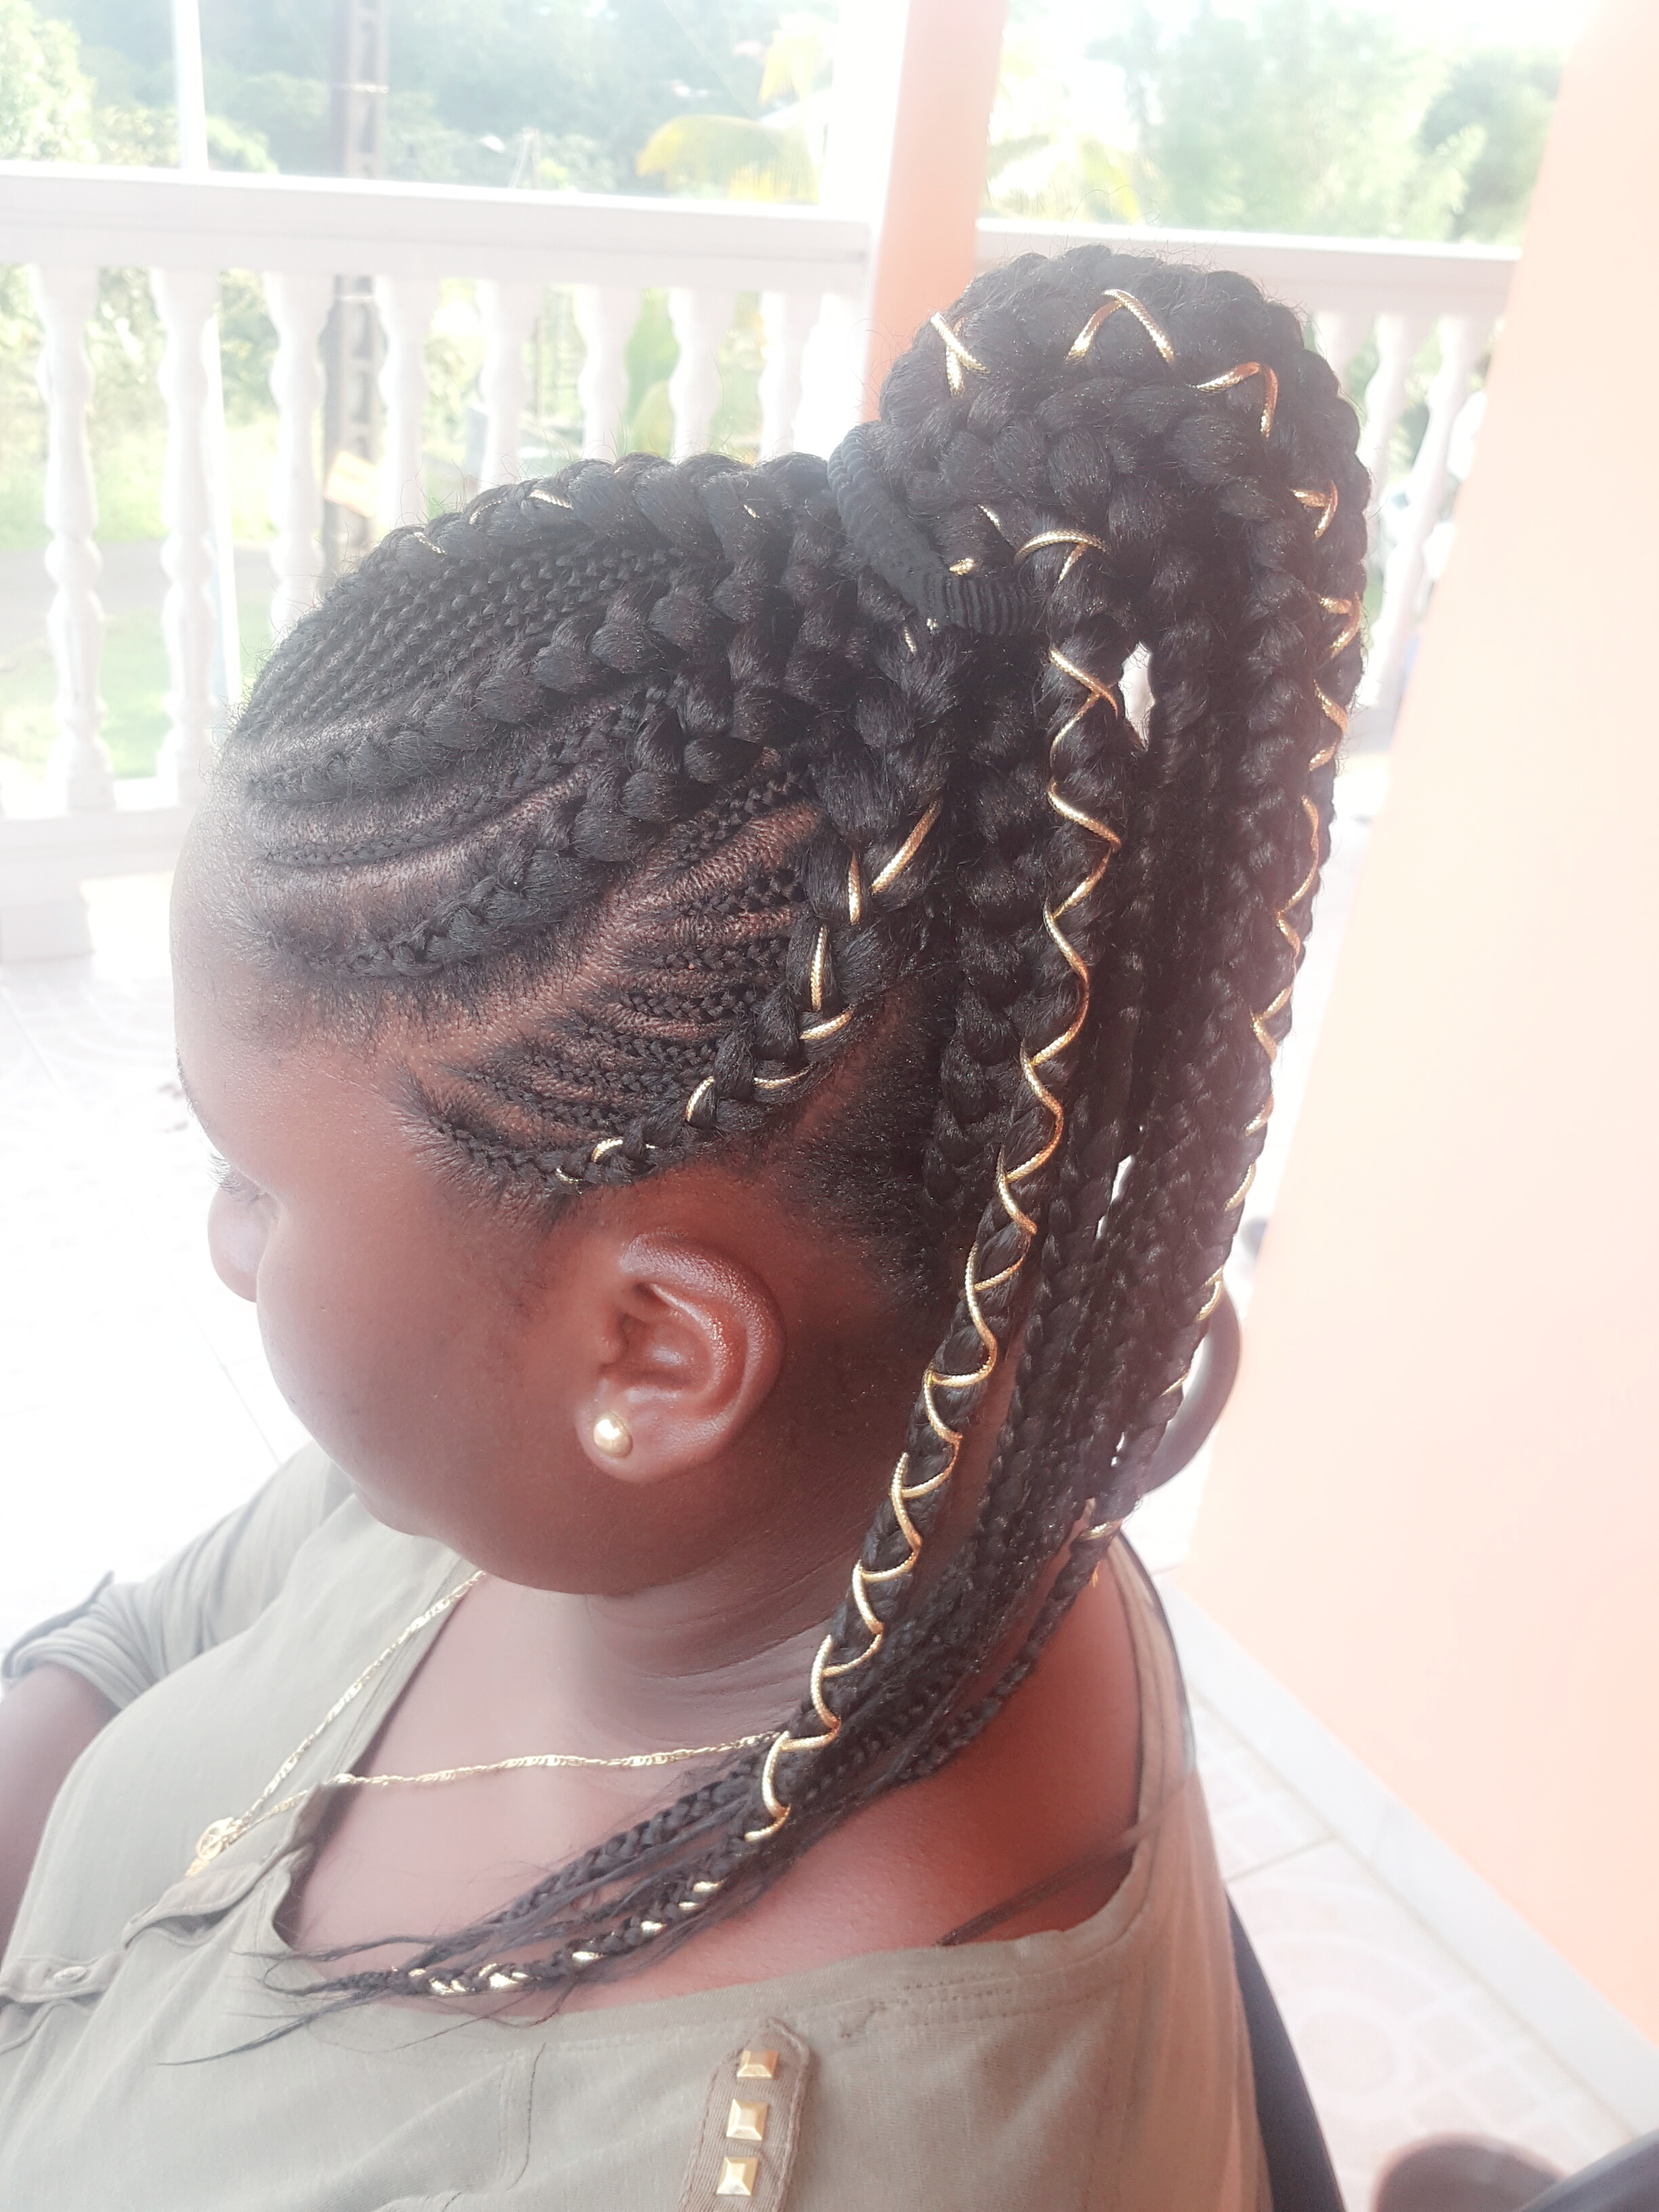 salon de coiffure afro tresse tresses box braids crochet braids vanilles tissages paris 75 77 78 91 92 93 94 95 JSXKATLL